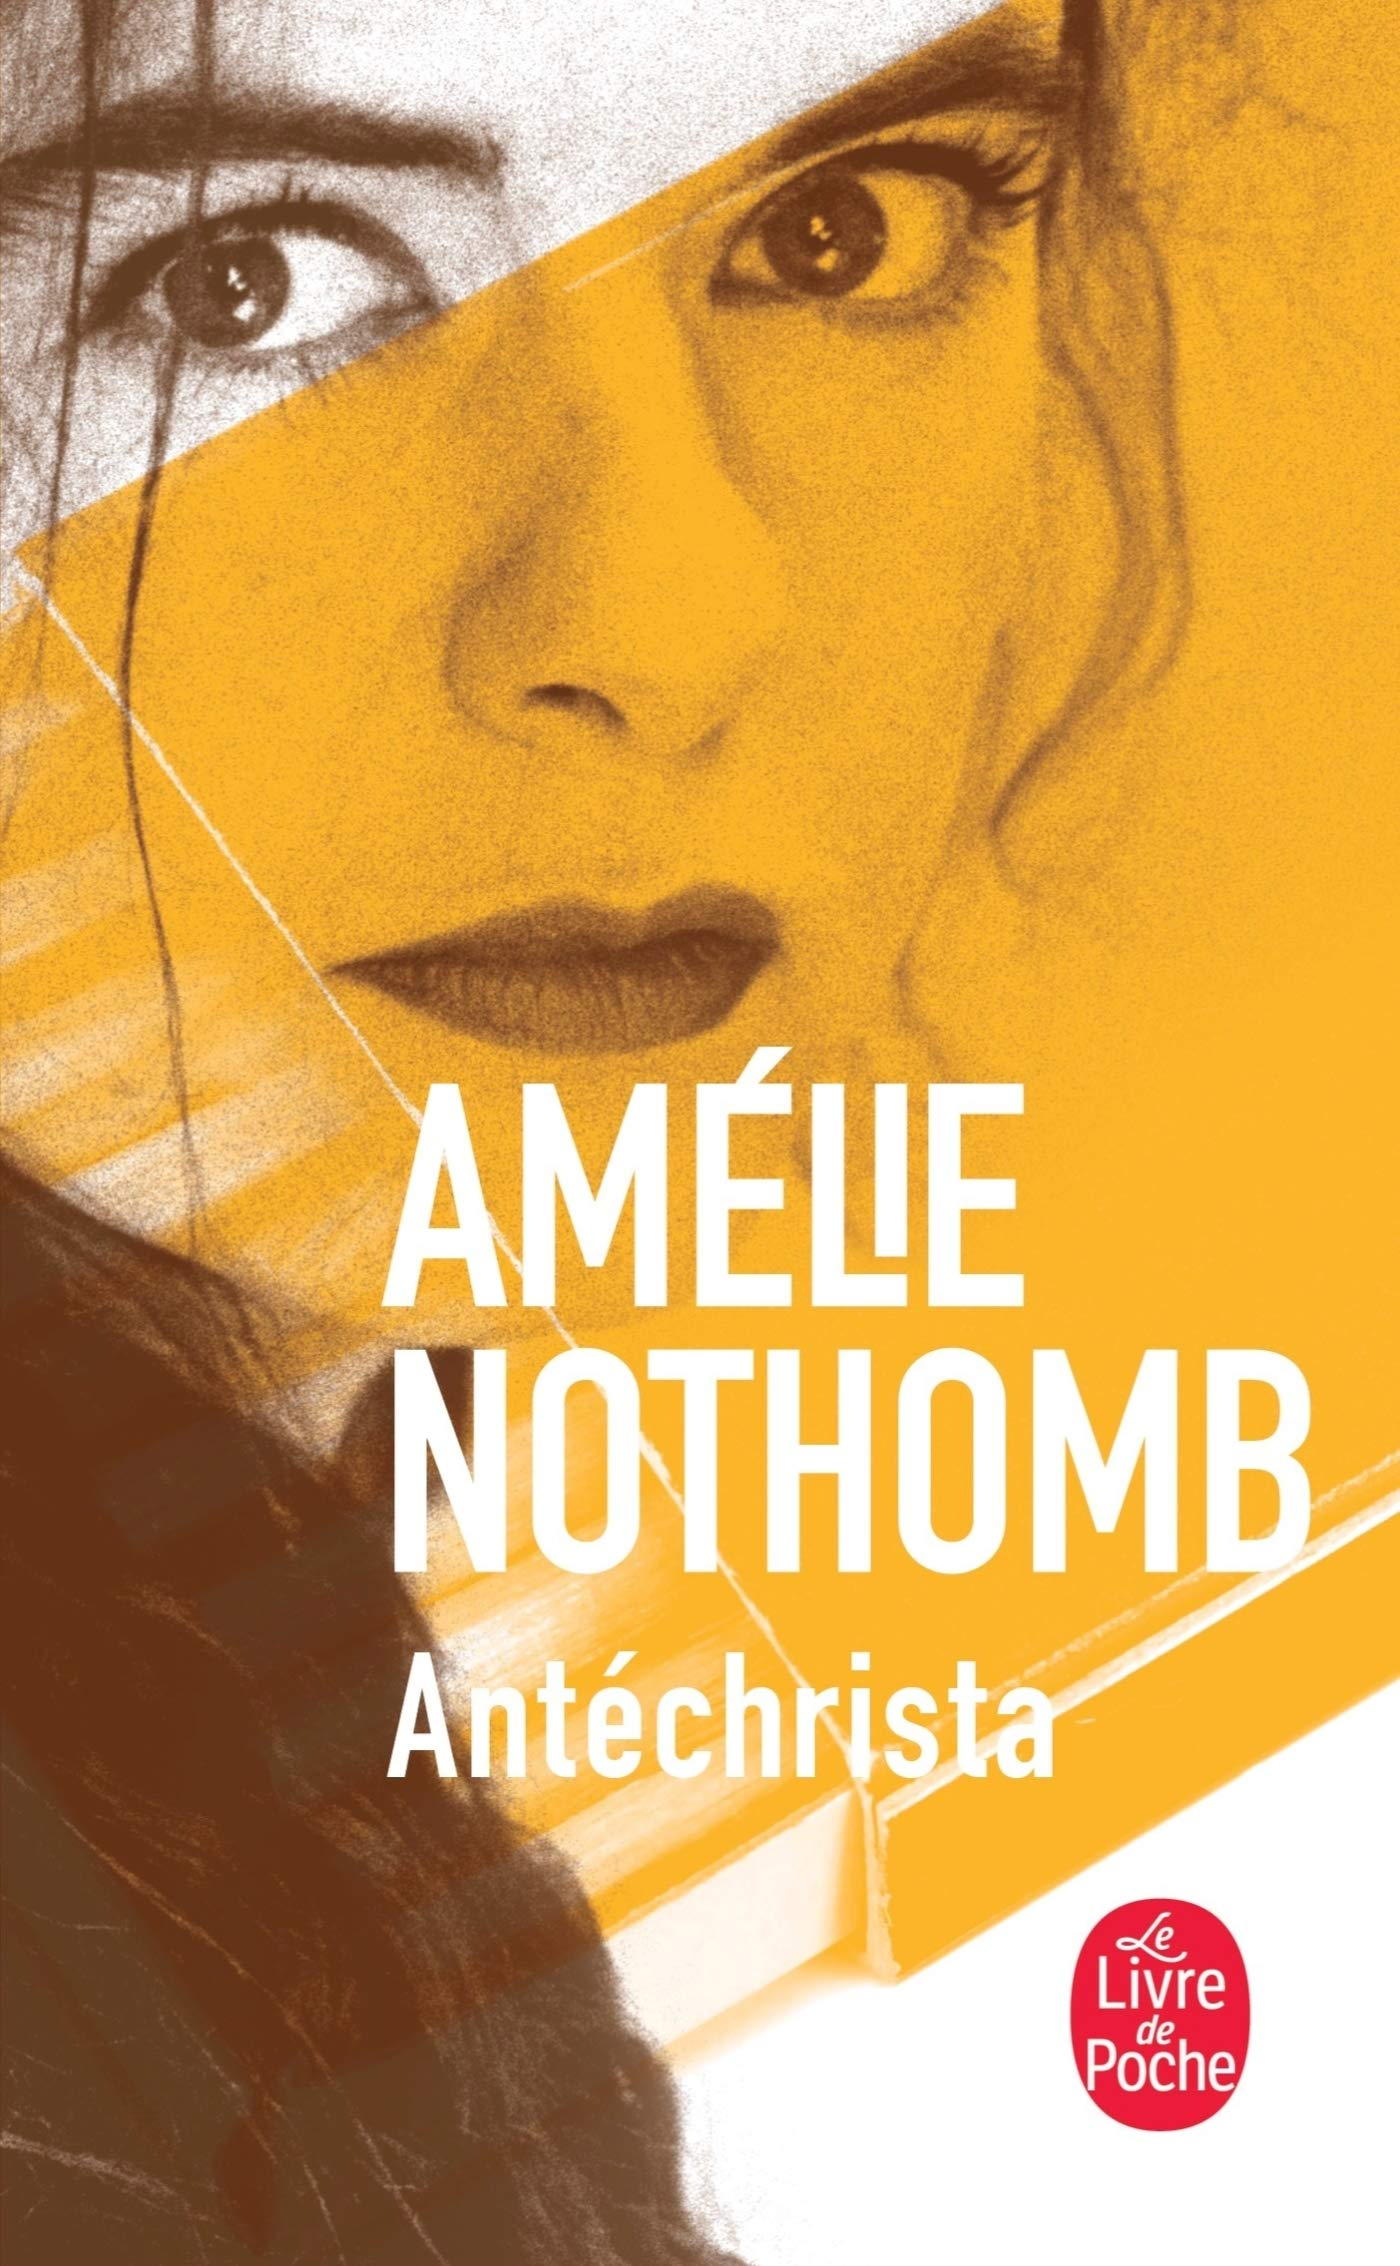 Antechrista amelie nothomb resume home work proofreading services usa